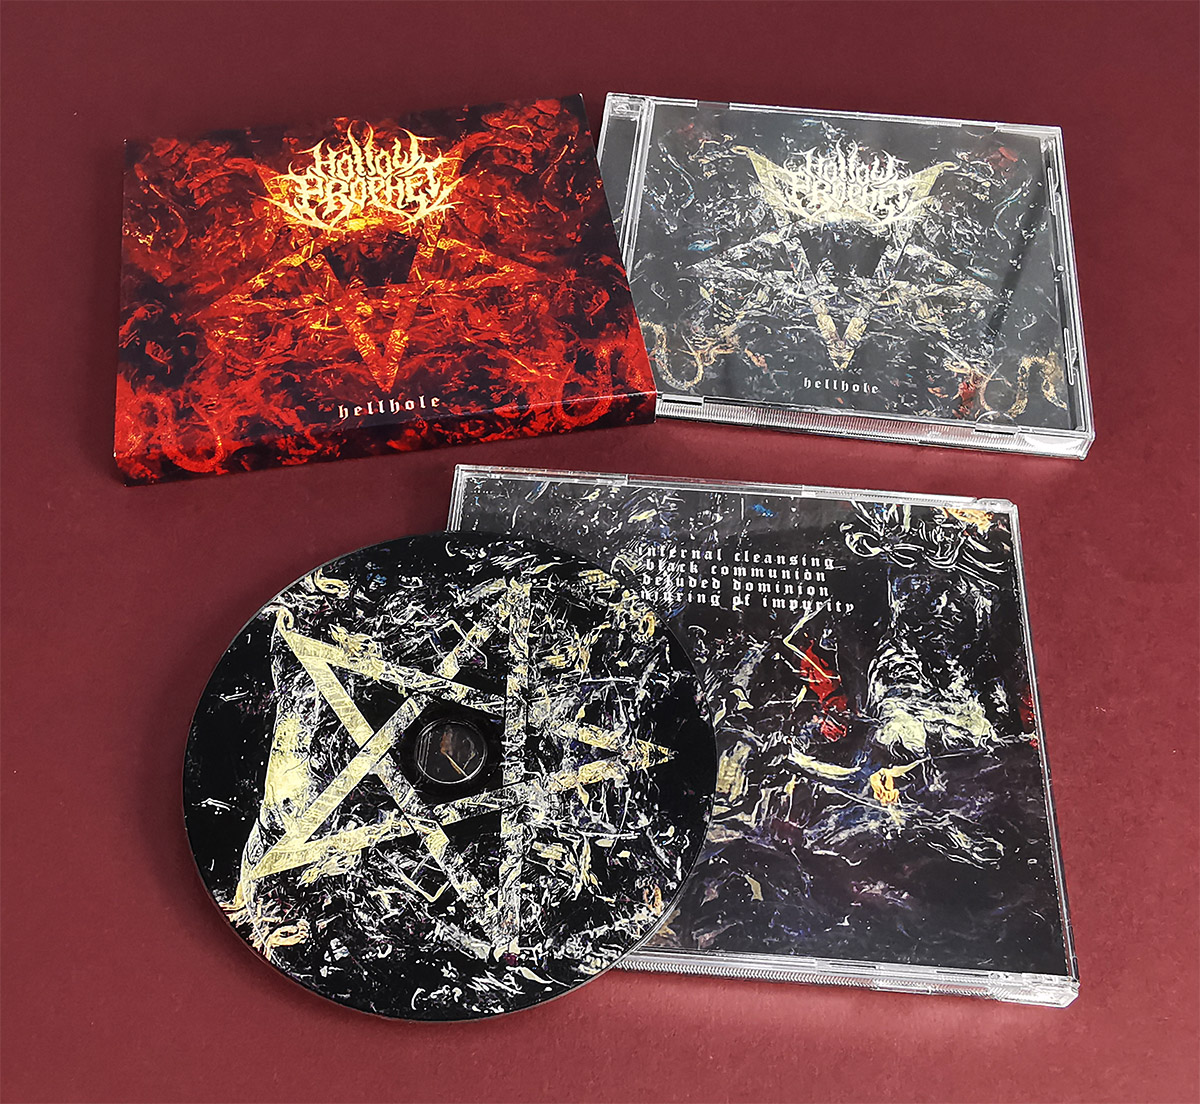 CD jewel cases with booklets and printed outer O-card slipcases